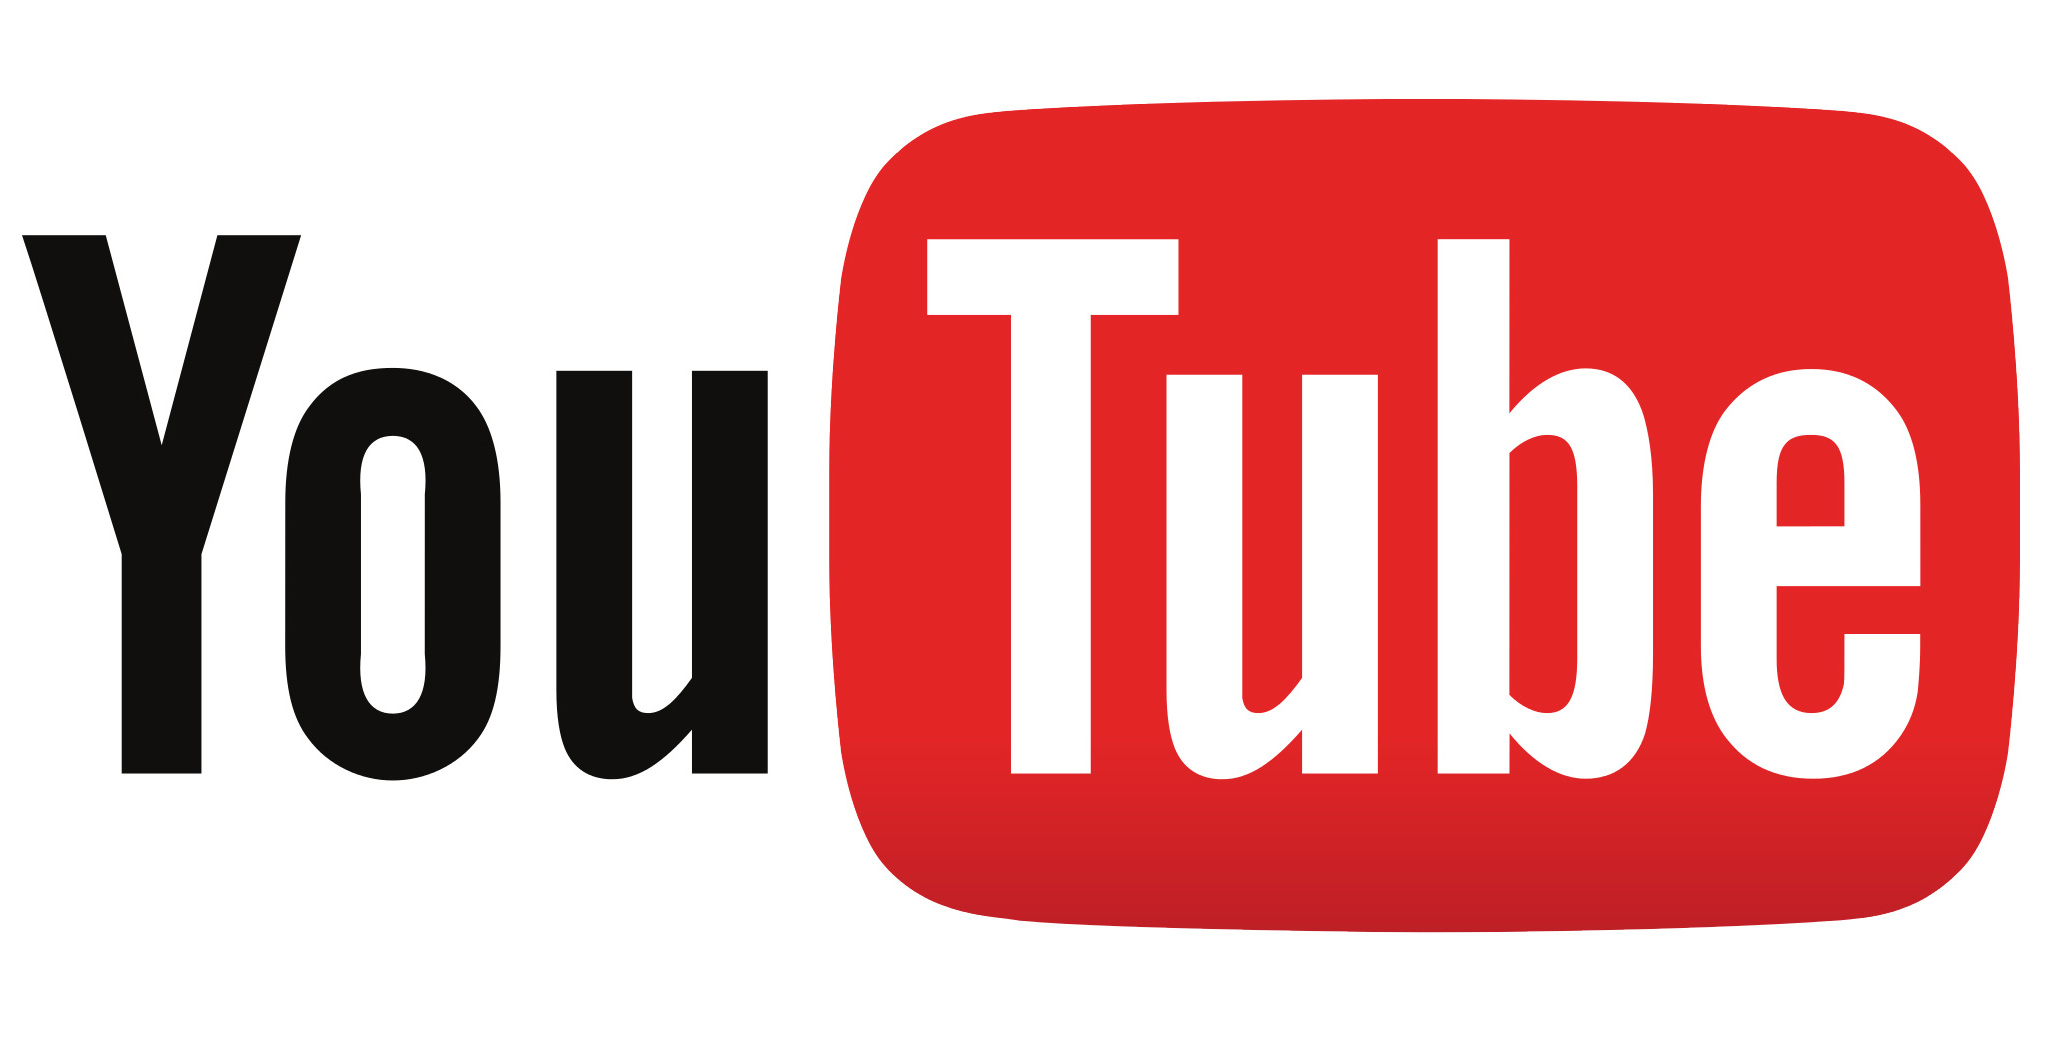 recuperare i video cancellati di YouTube su Android